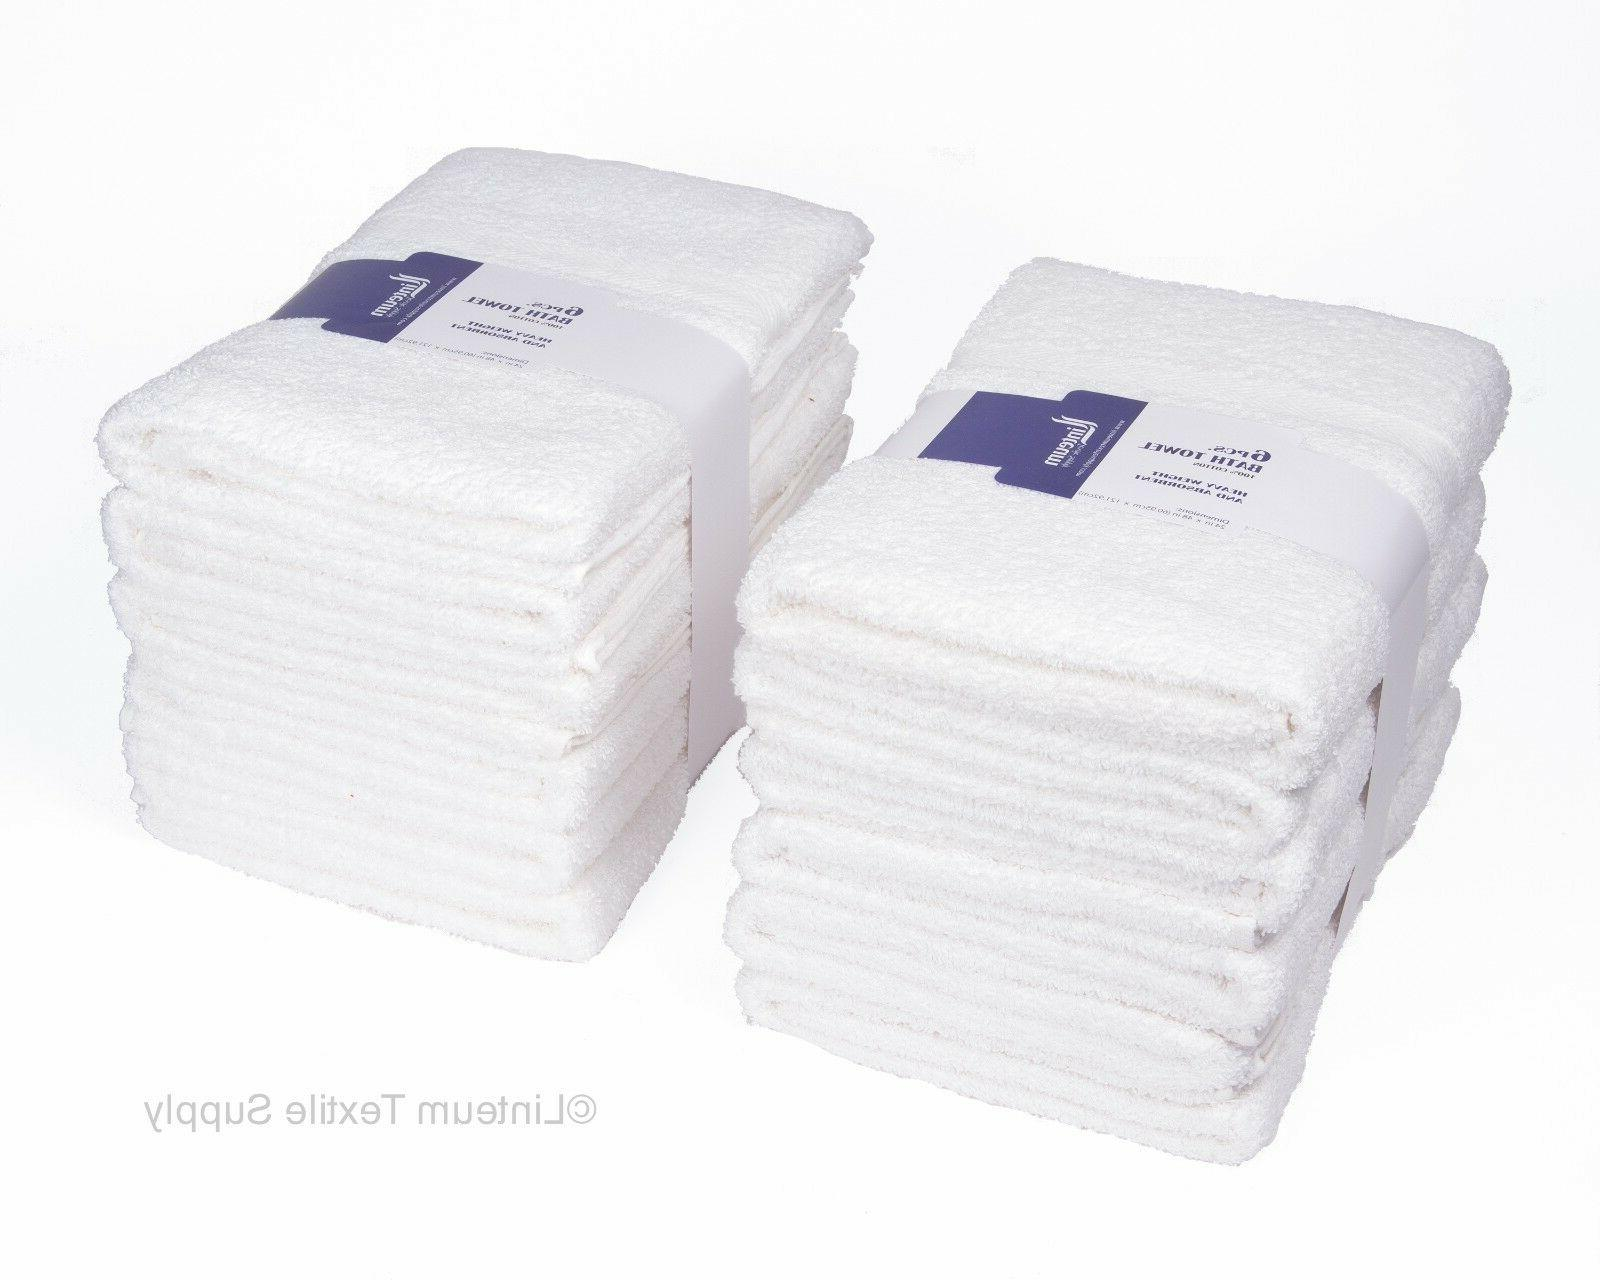 Linteum Textile 100% Cotton Hotel-Quality HAIR TOWELS 20x40